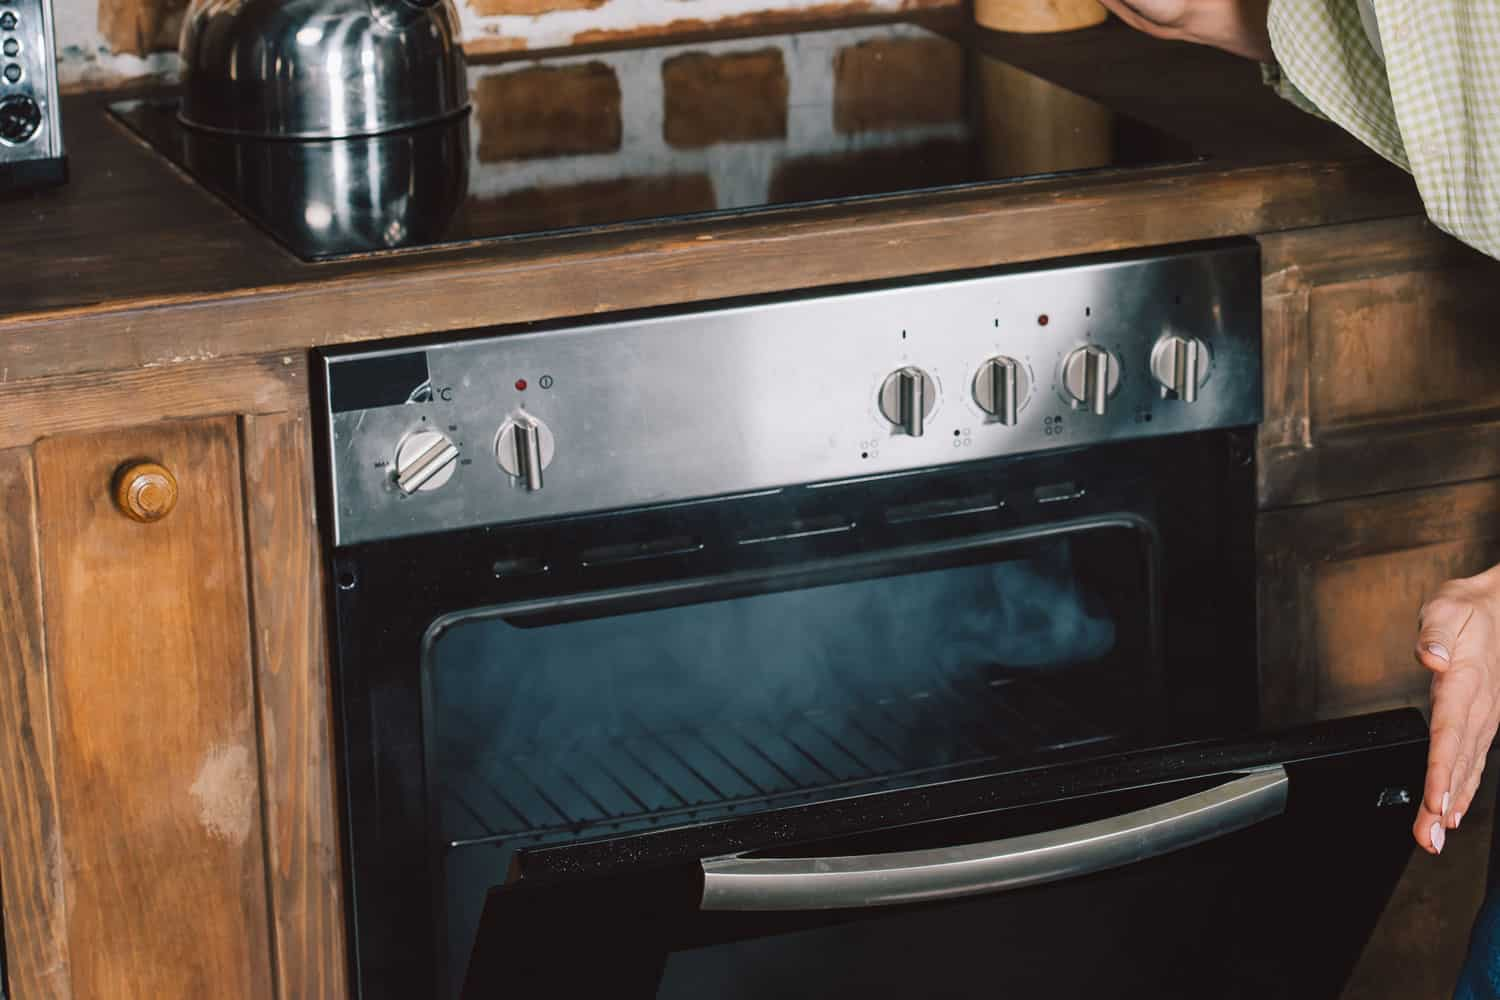 A woman opening her smoking oven